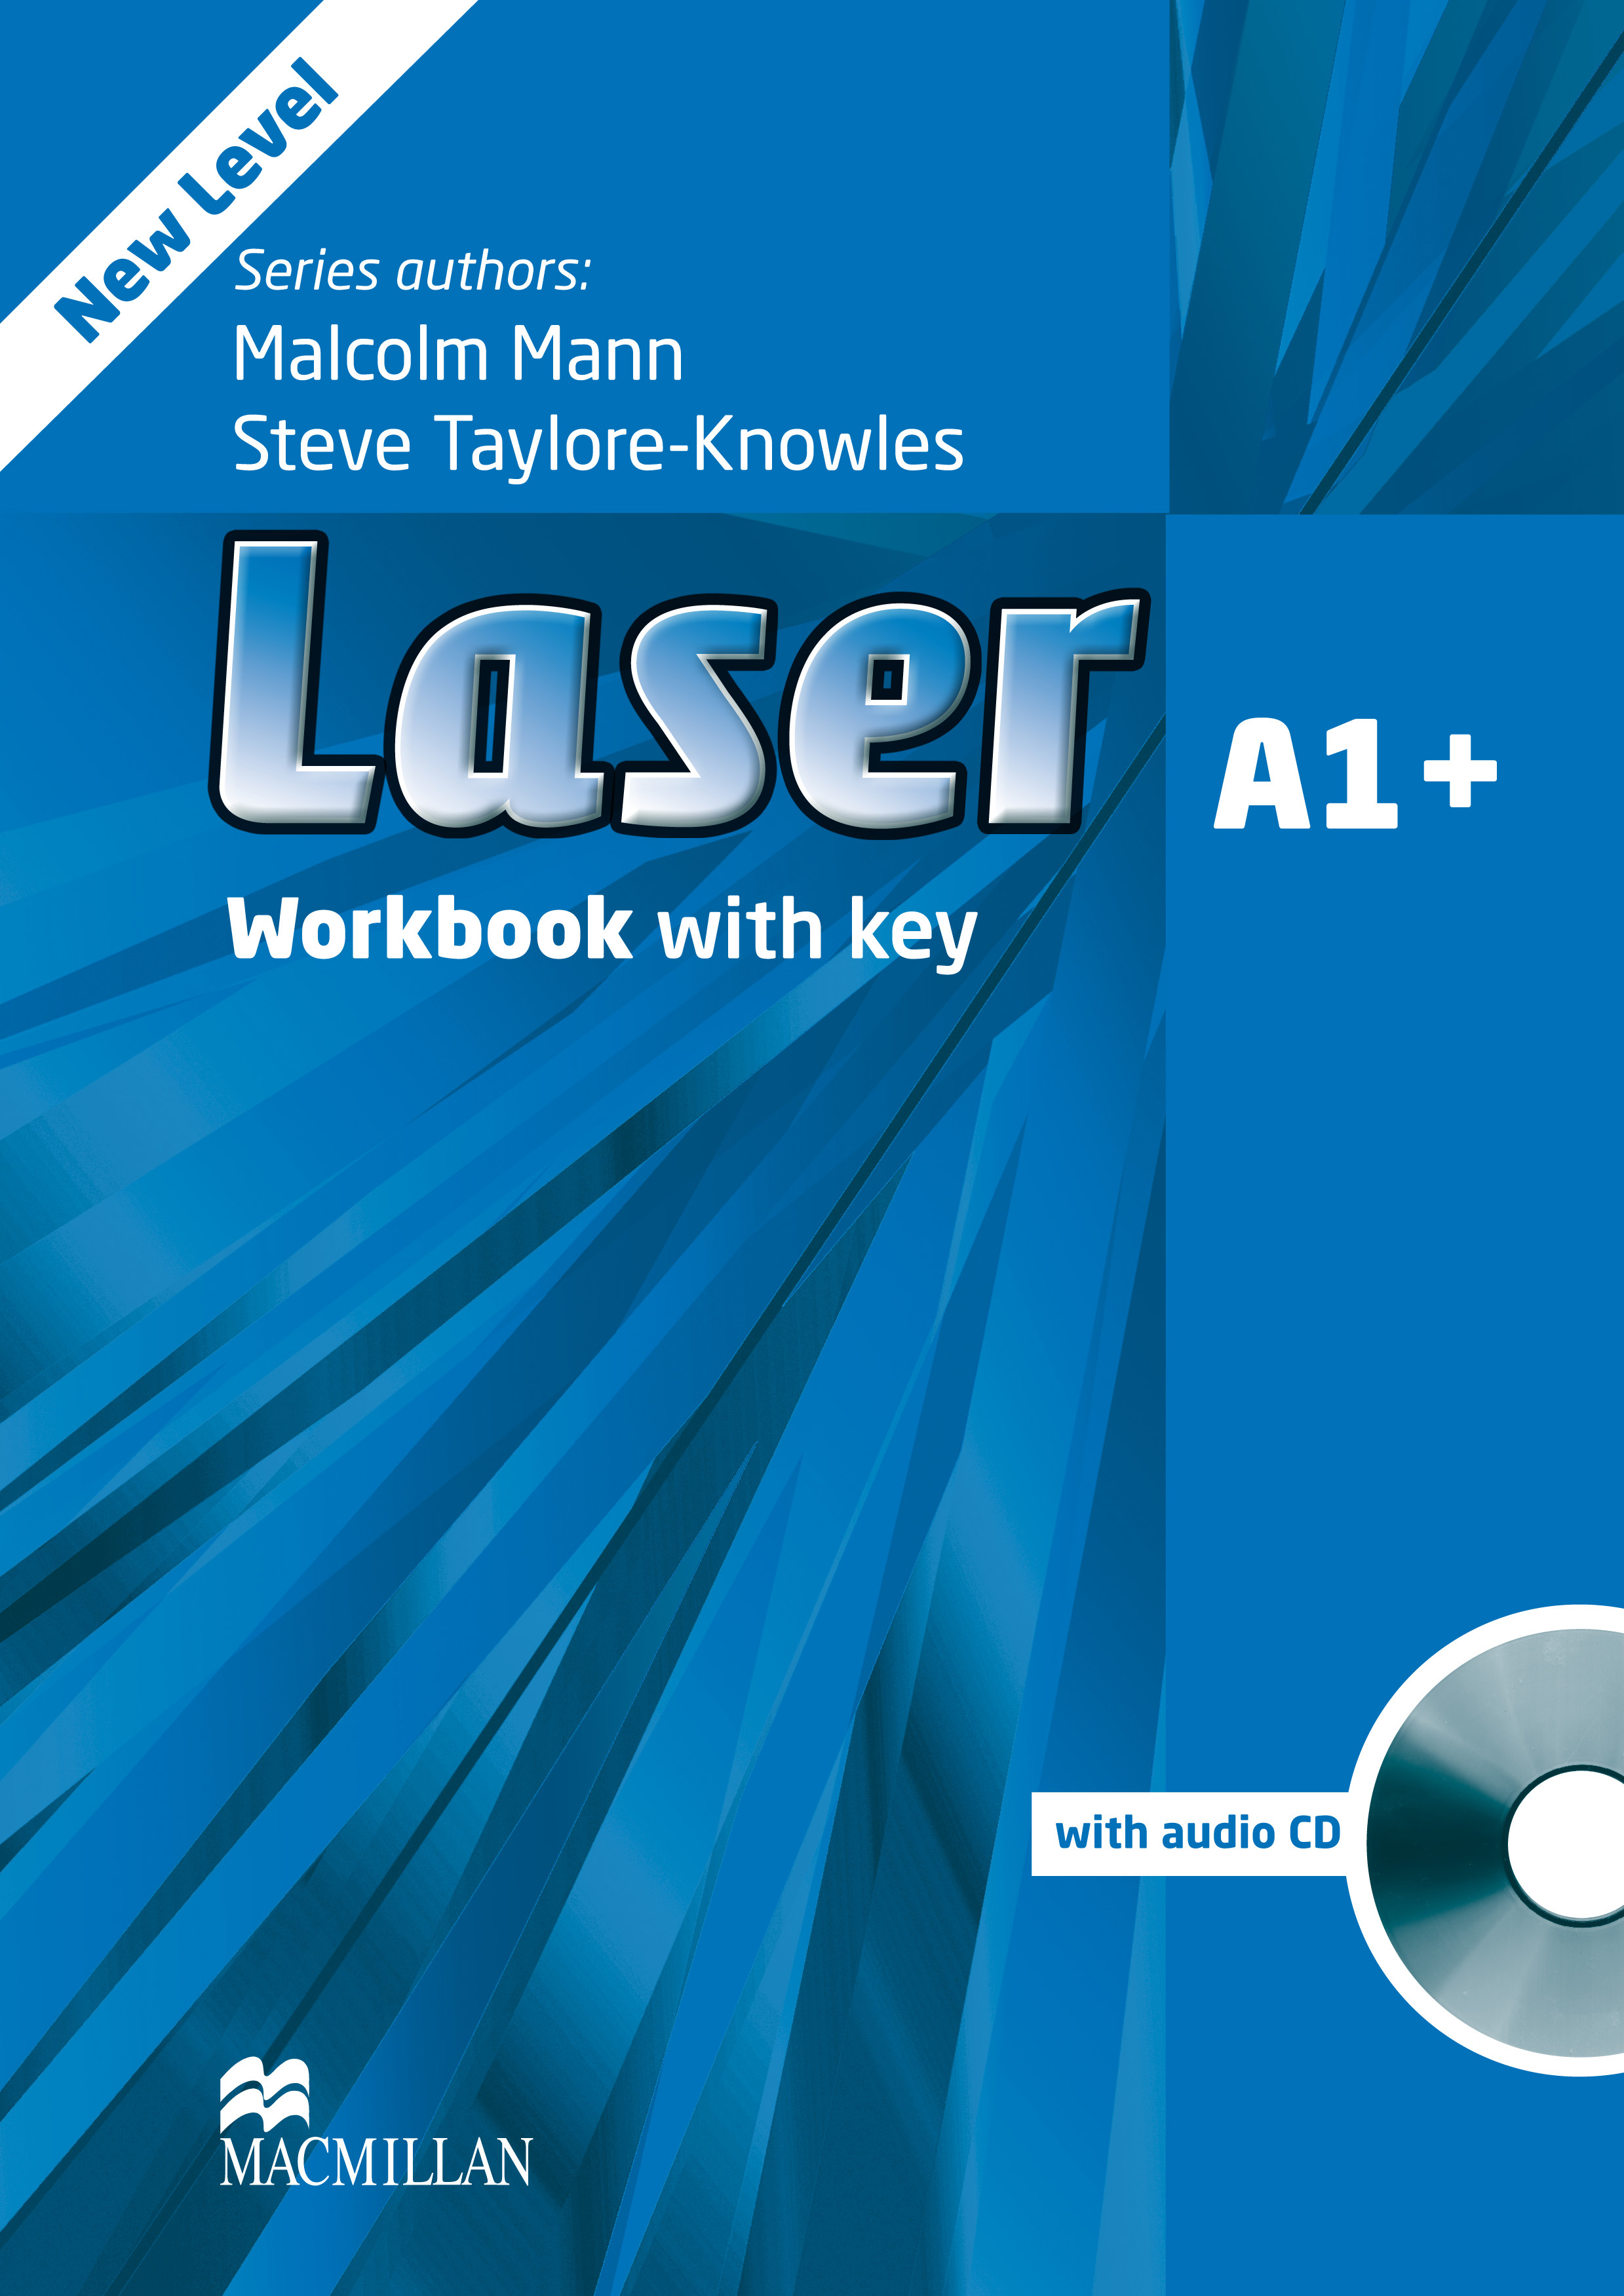 Laser A1+ Third Edition Workbook with Key and CD Pack